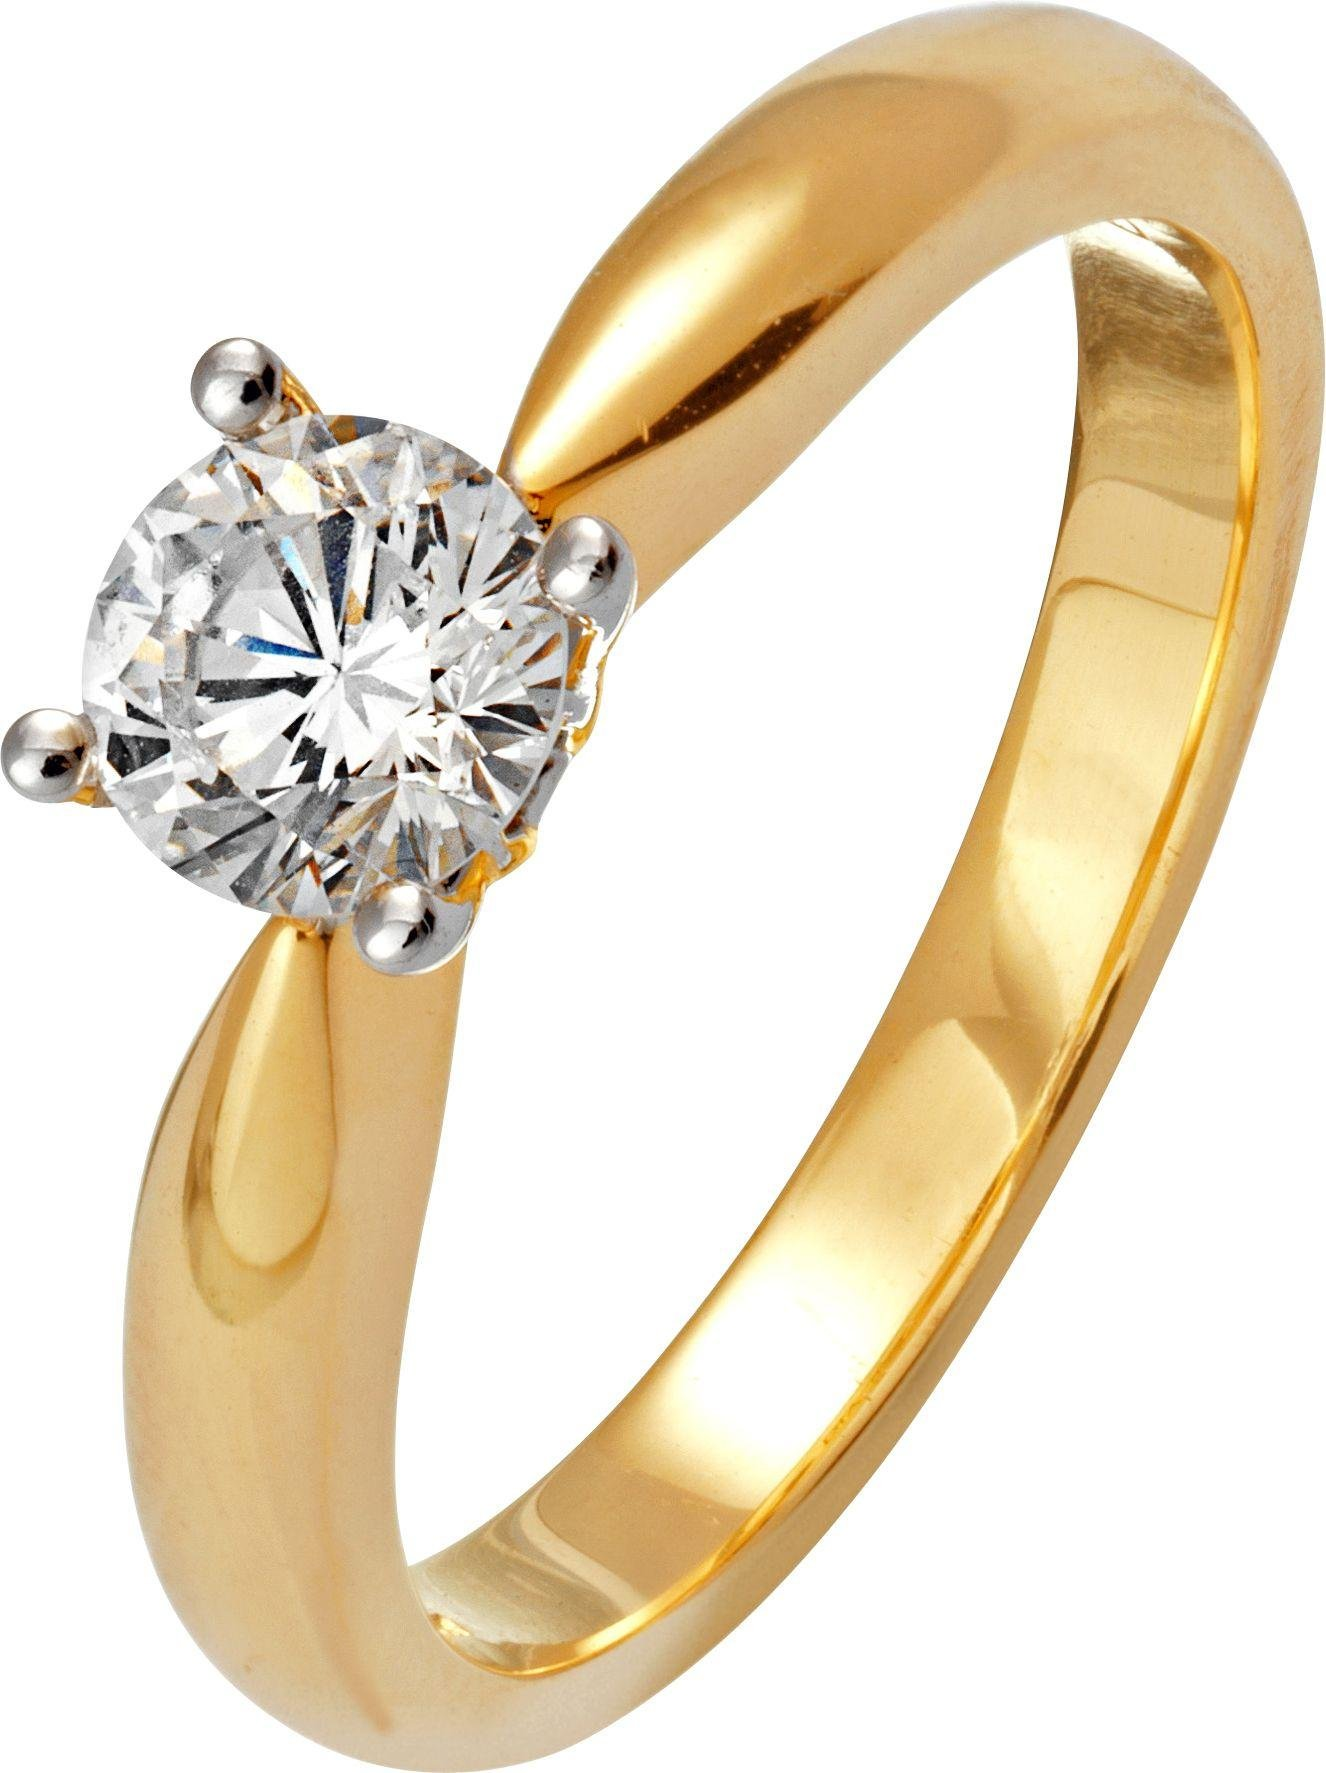 Buy Everlasting Love 18ct Gold 0 50ct Diamond Solitaire Ring L